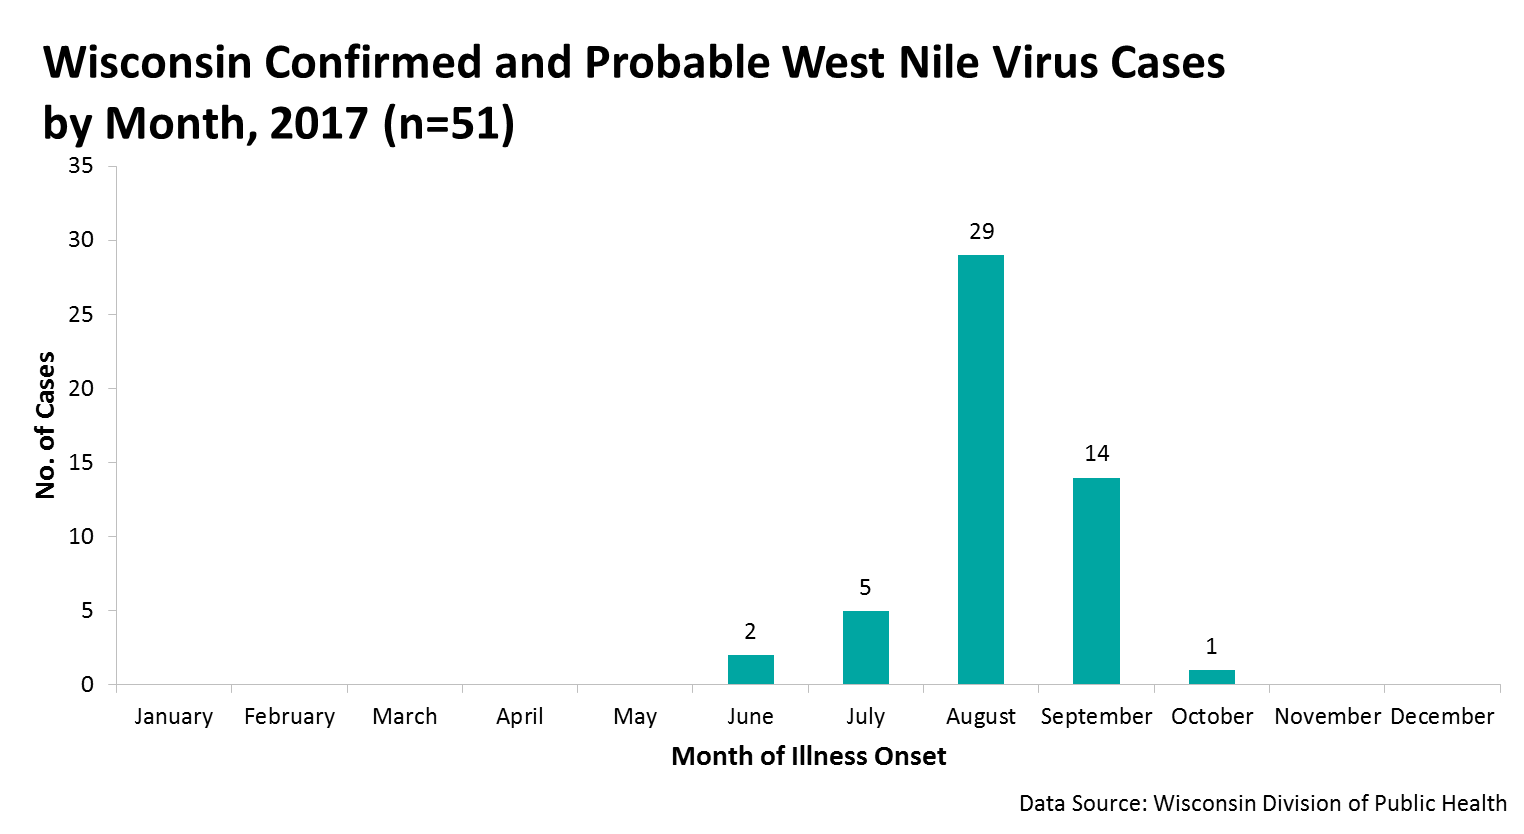 Graph of Confirmed and Probably West Nile Virus Cases by Month 2017